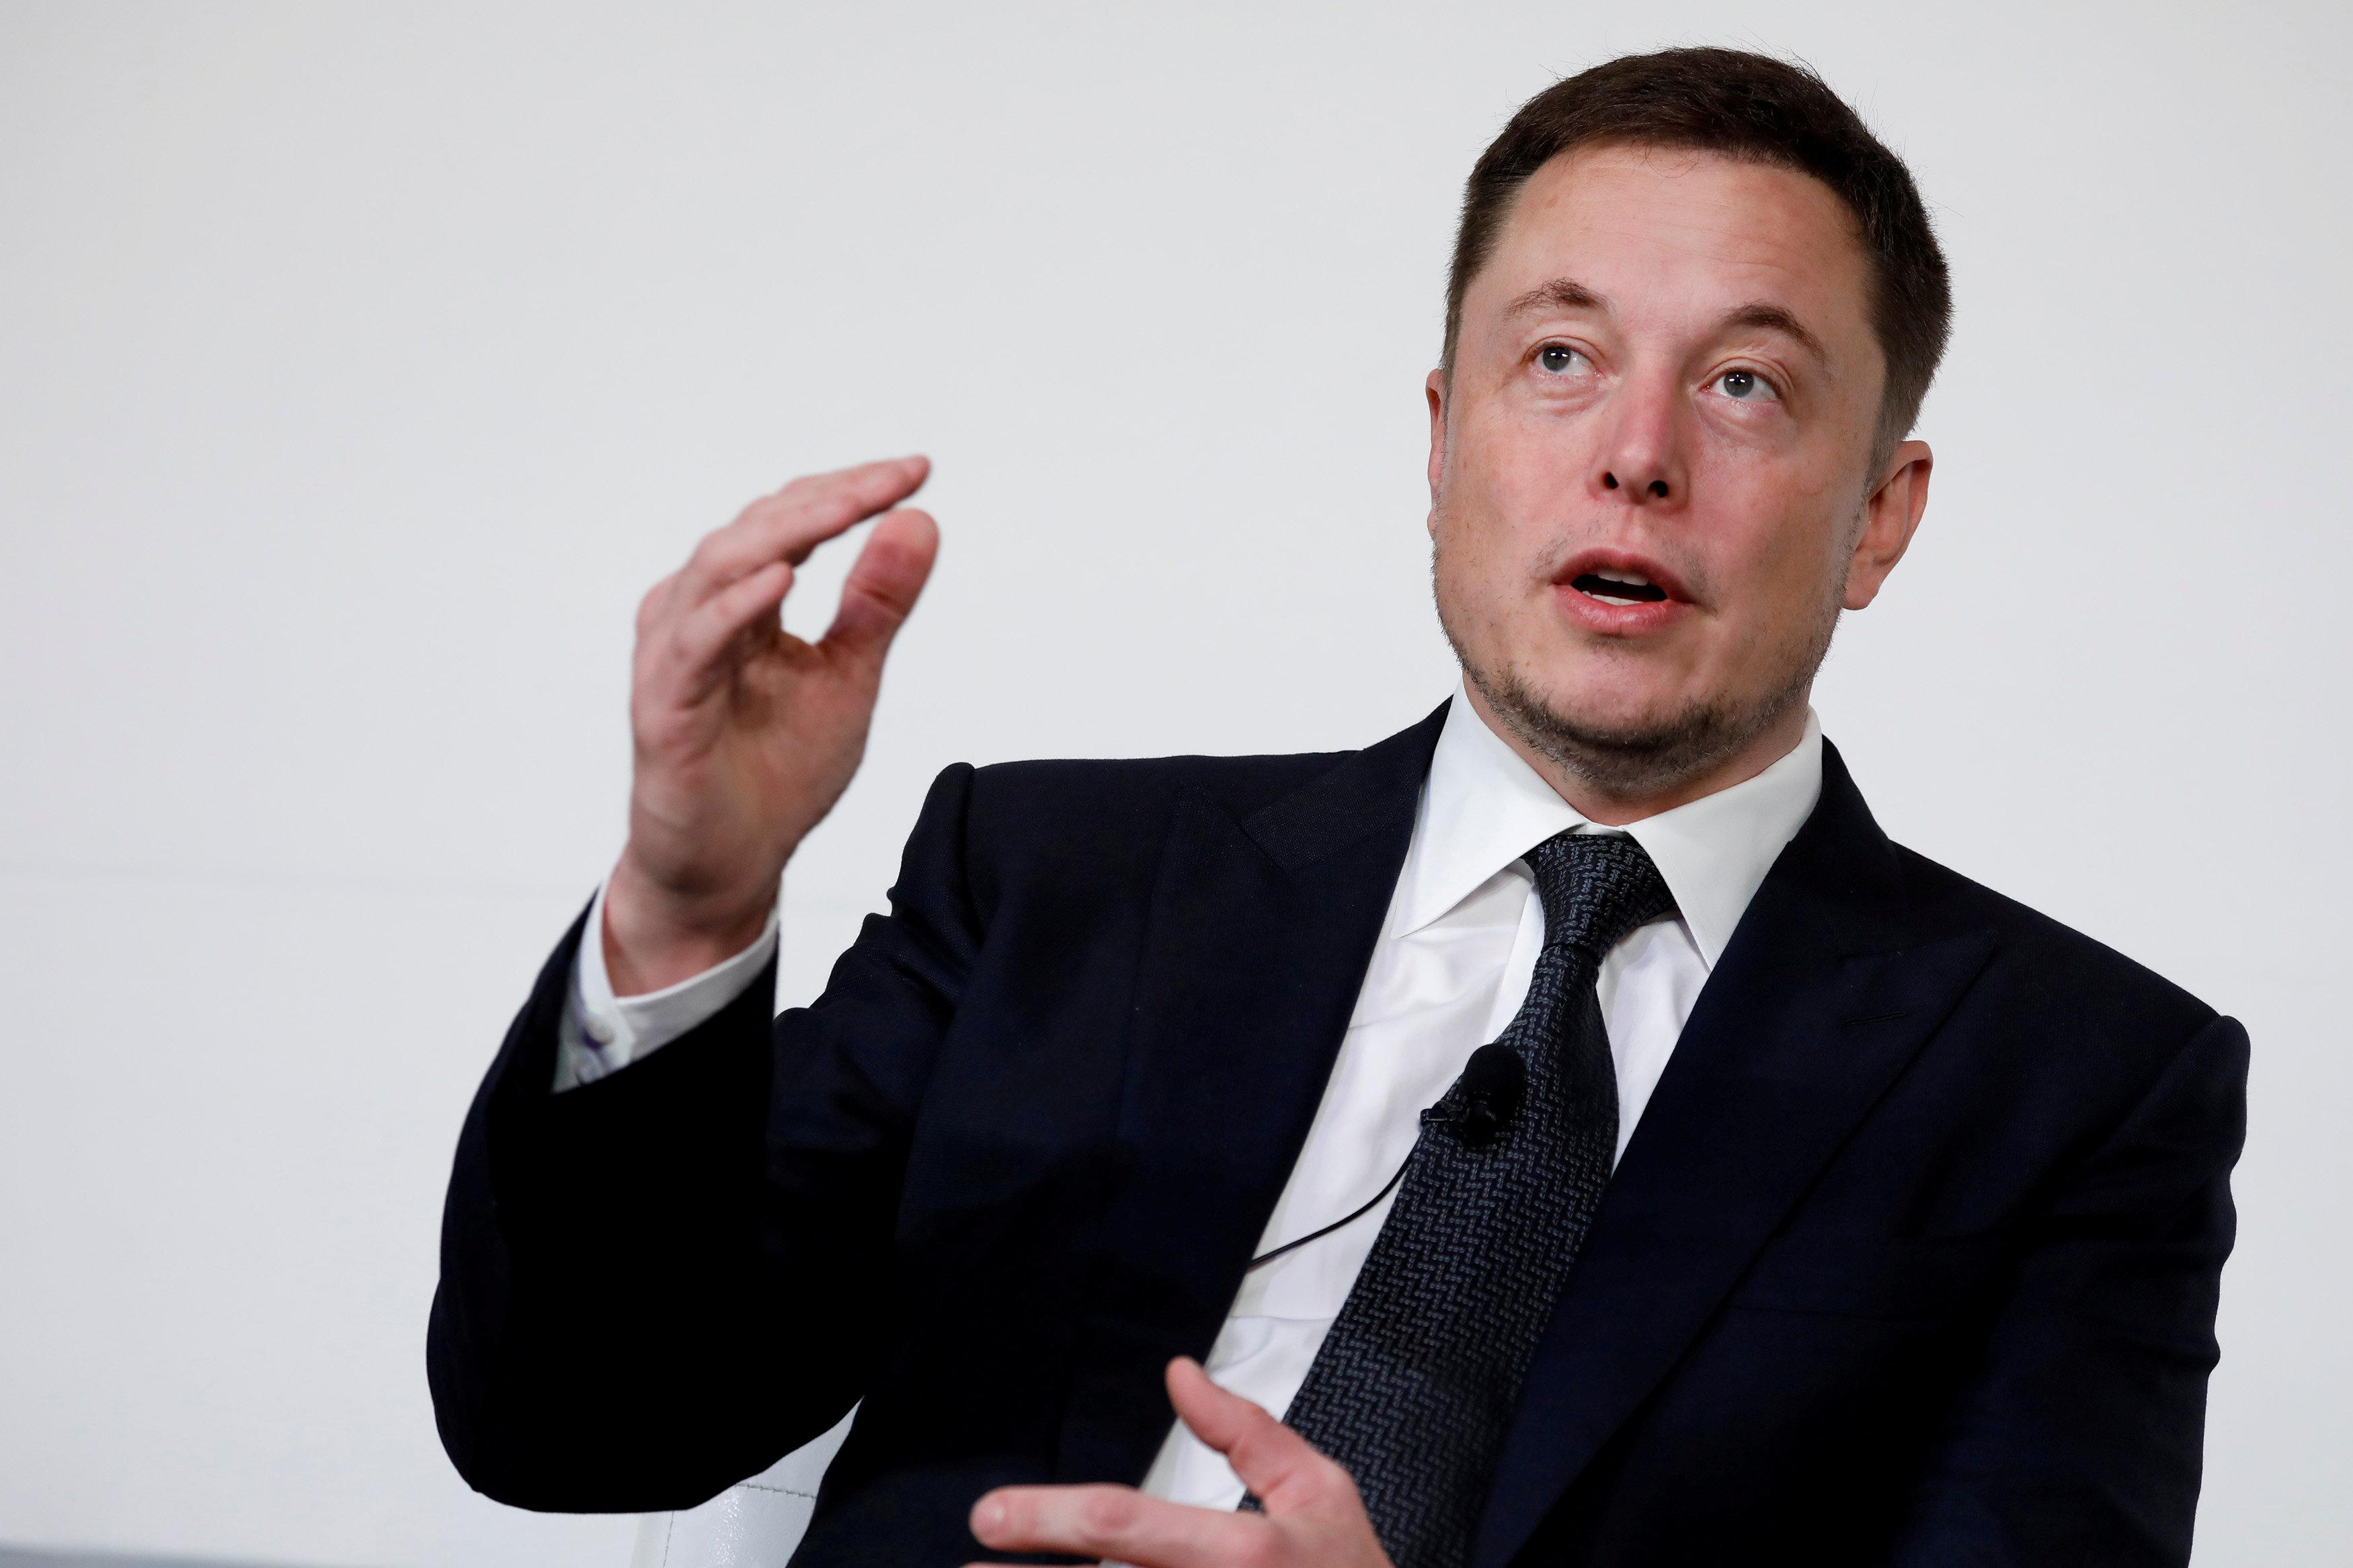 Lawsuits accuse Tesla's Musk of fraud over tweets, going-private